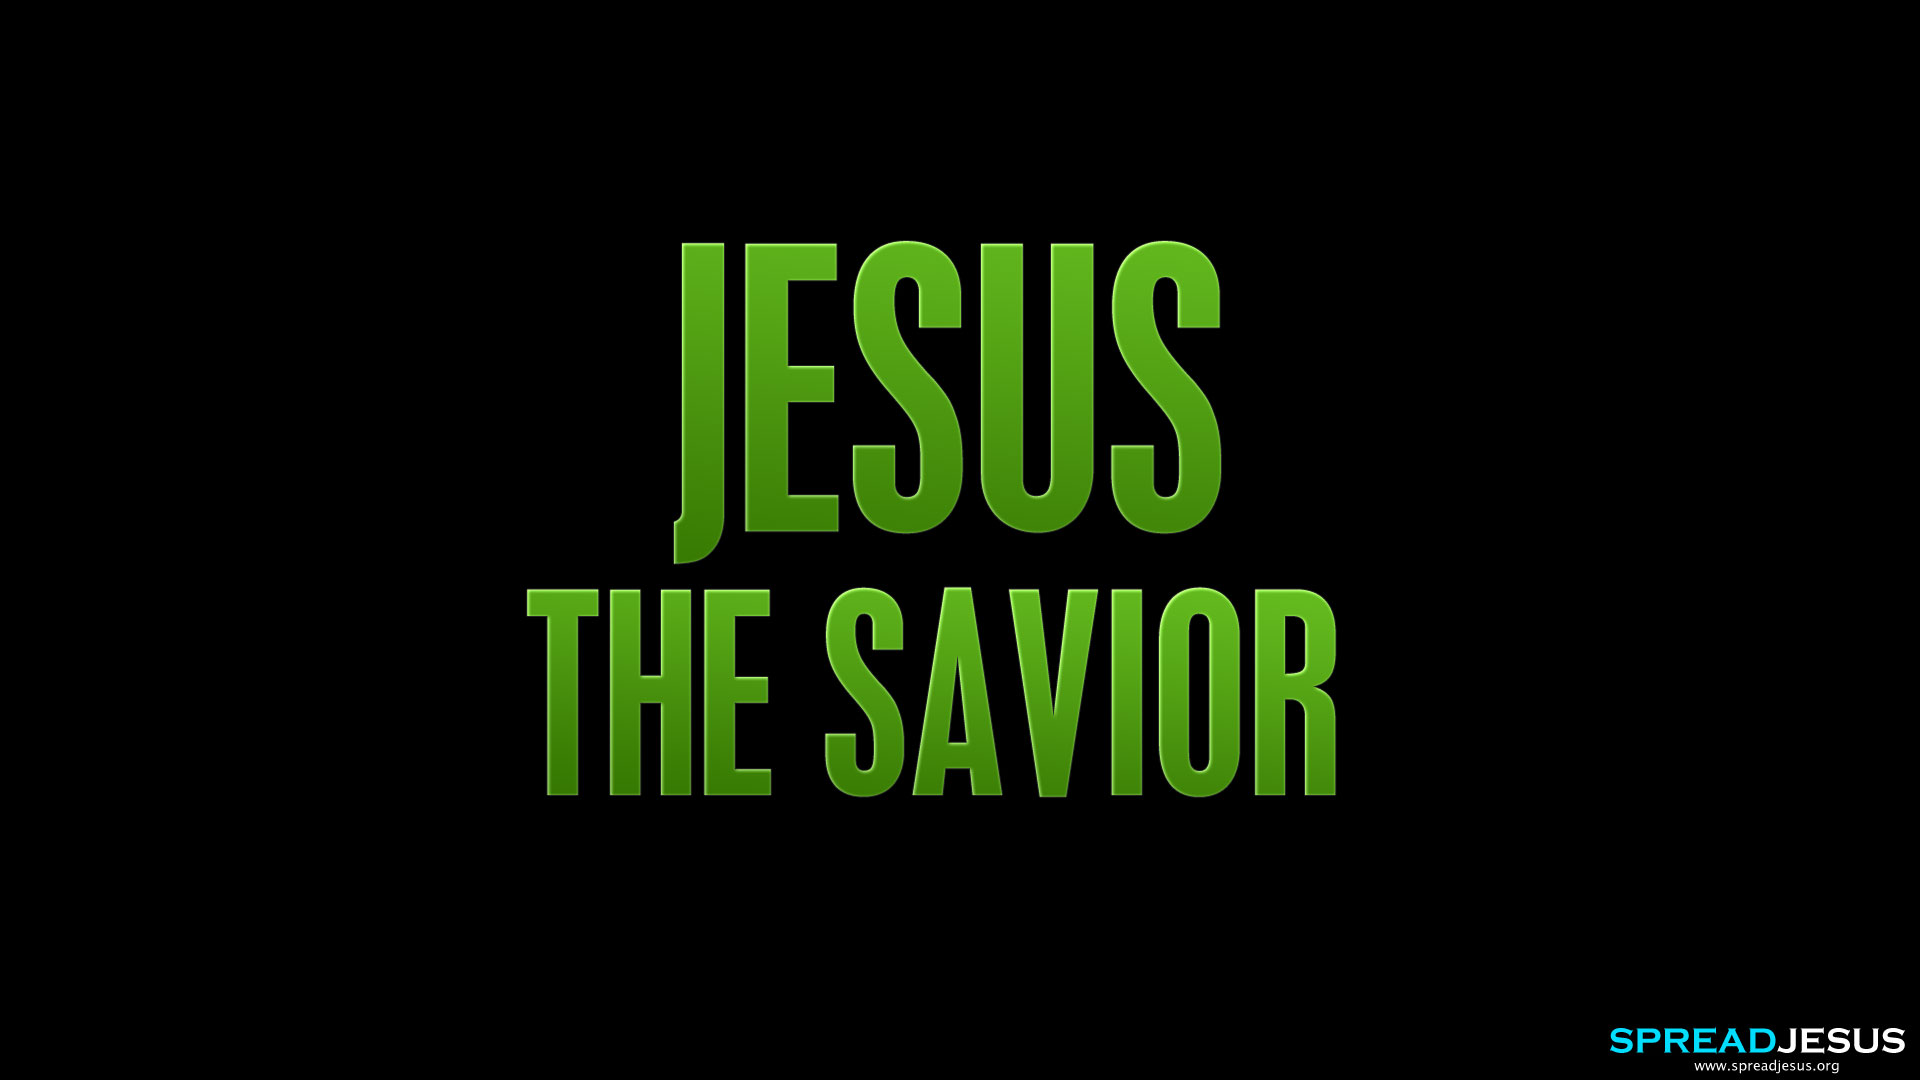 jesus christ hd wallpapers free downloadjesus the savior jesus christ hd wallpaper 3 free